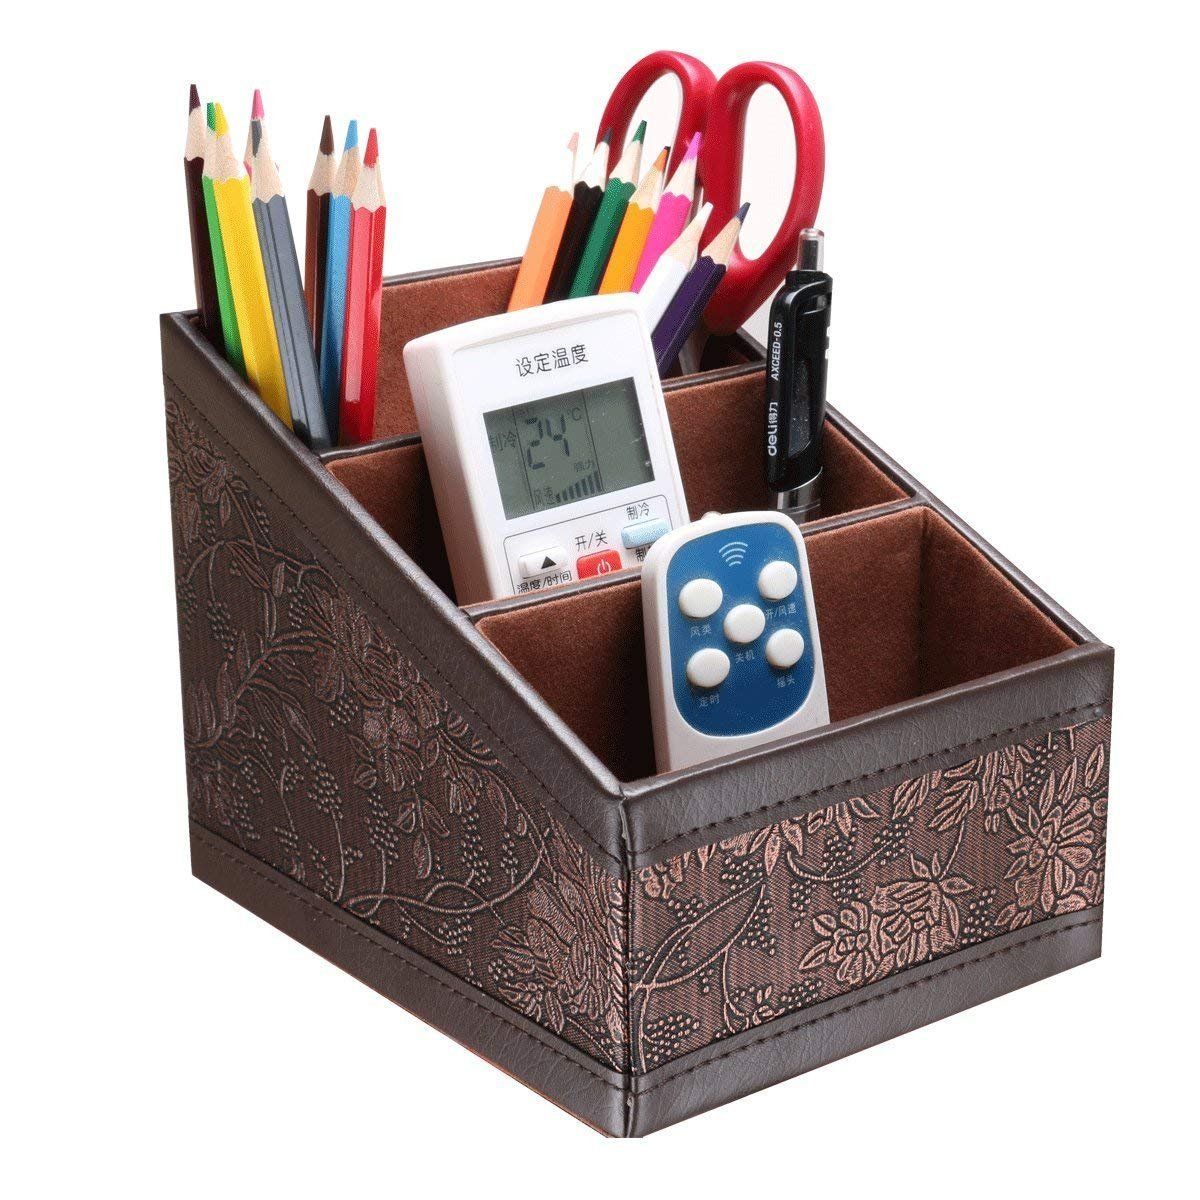 Multifunctional PU Leather Desktop Storage Office Desktop Organizer, Office Organizer, Desktop Caddy Remote Control Holder/Remote Control Caddy(Retro Flower)